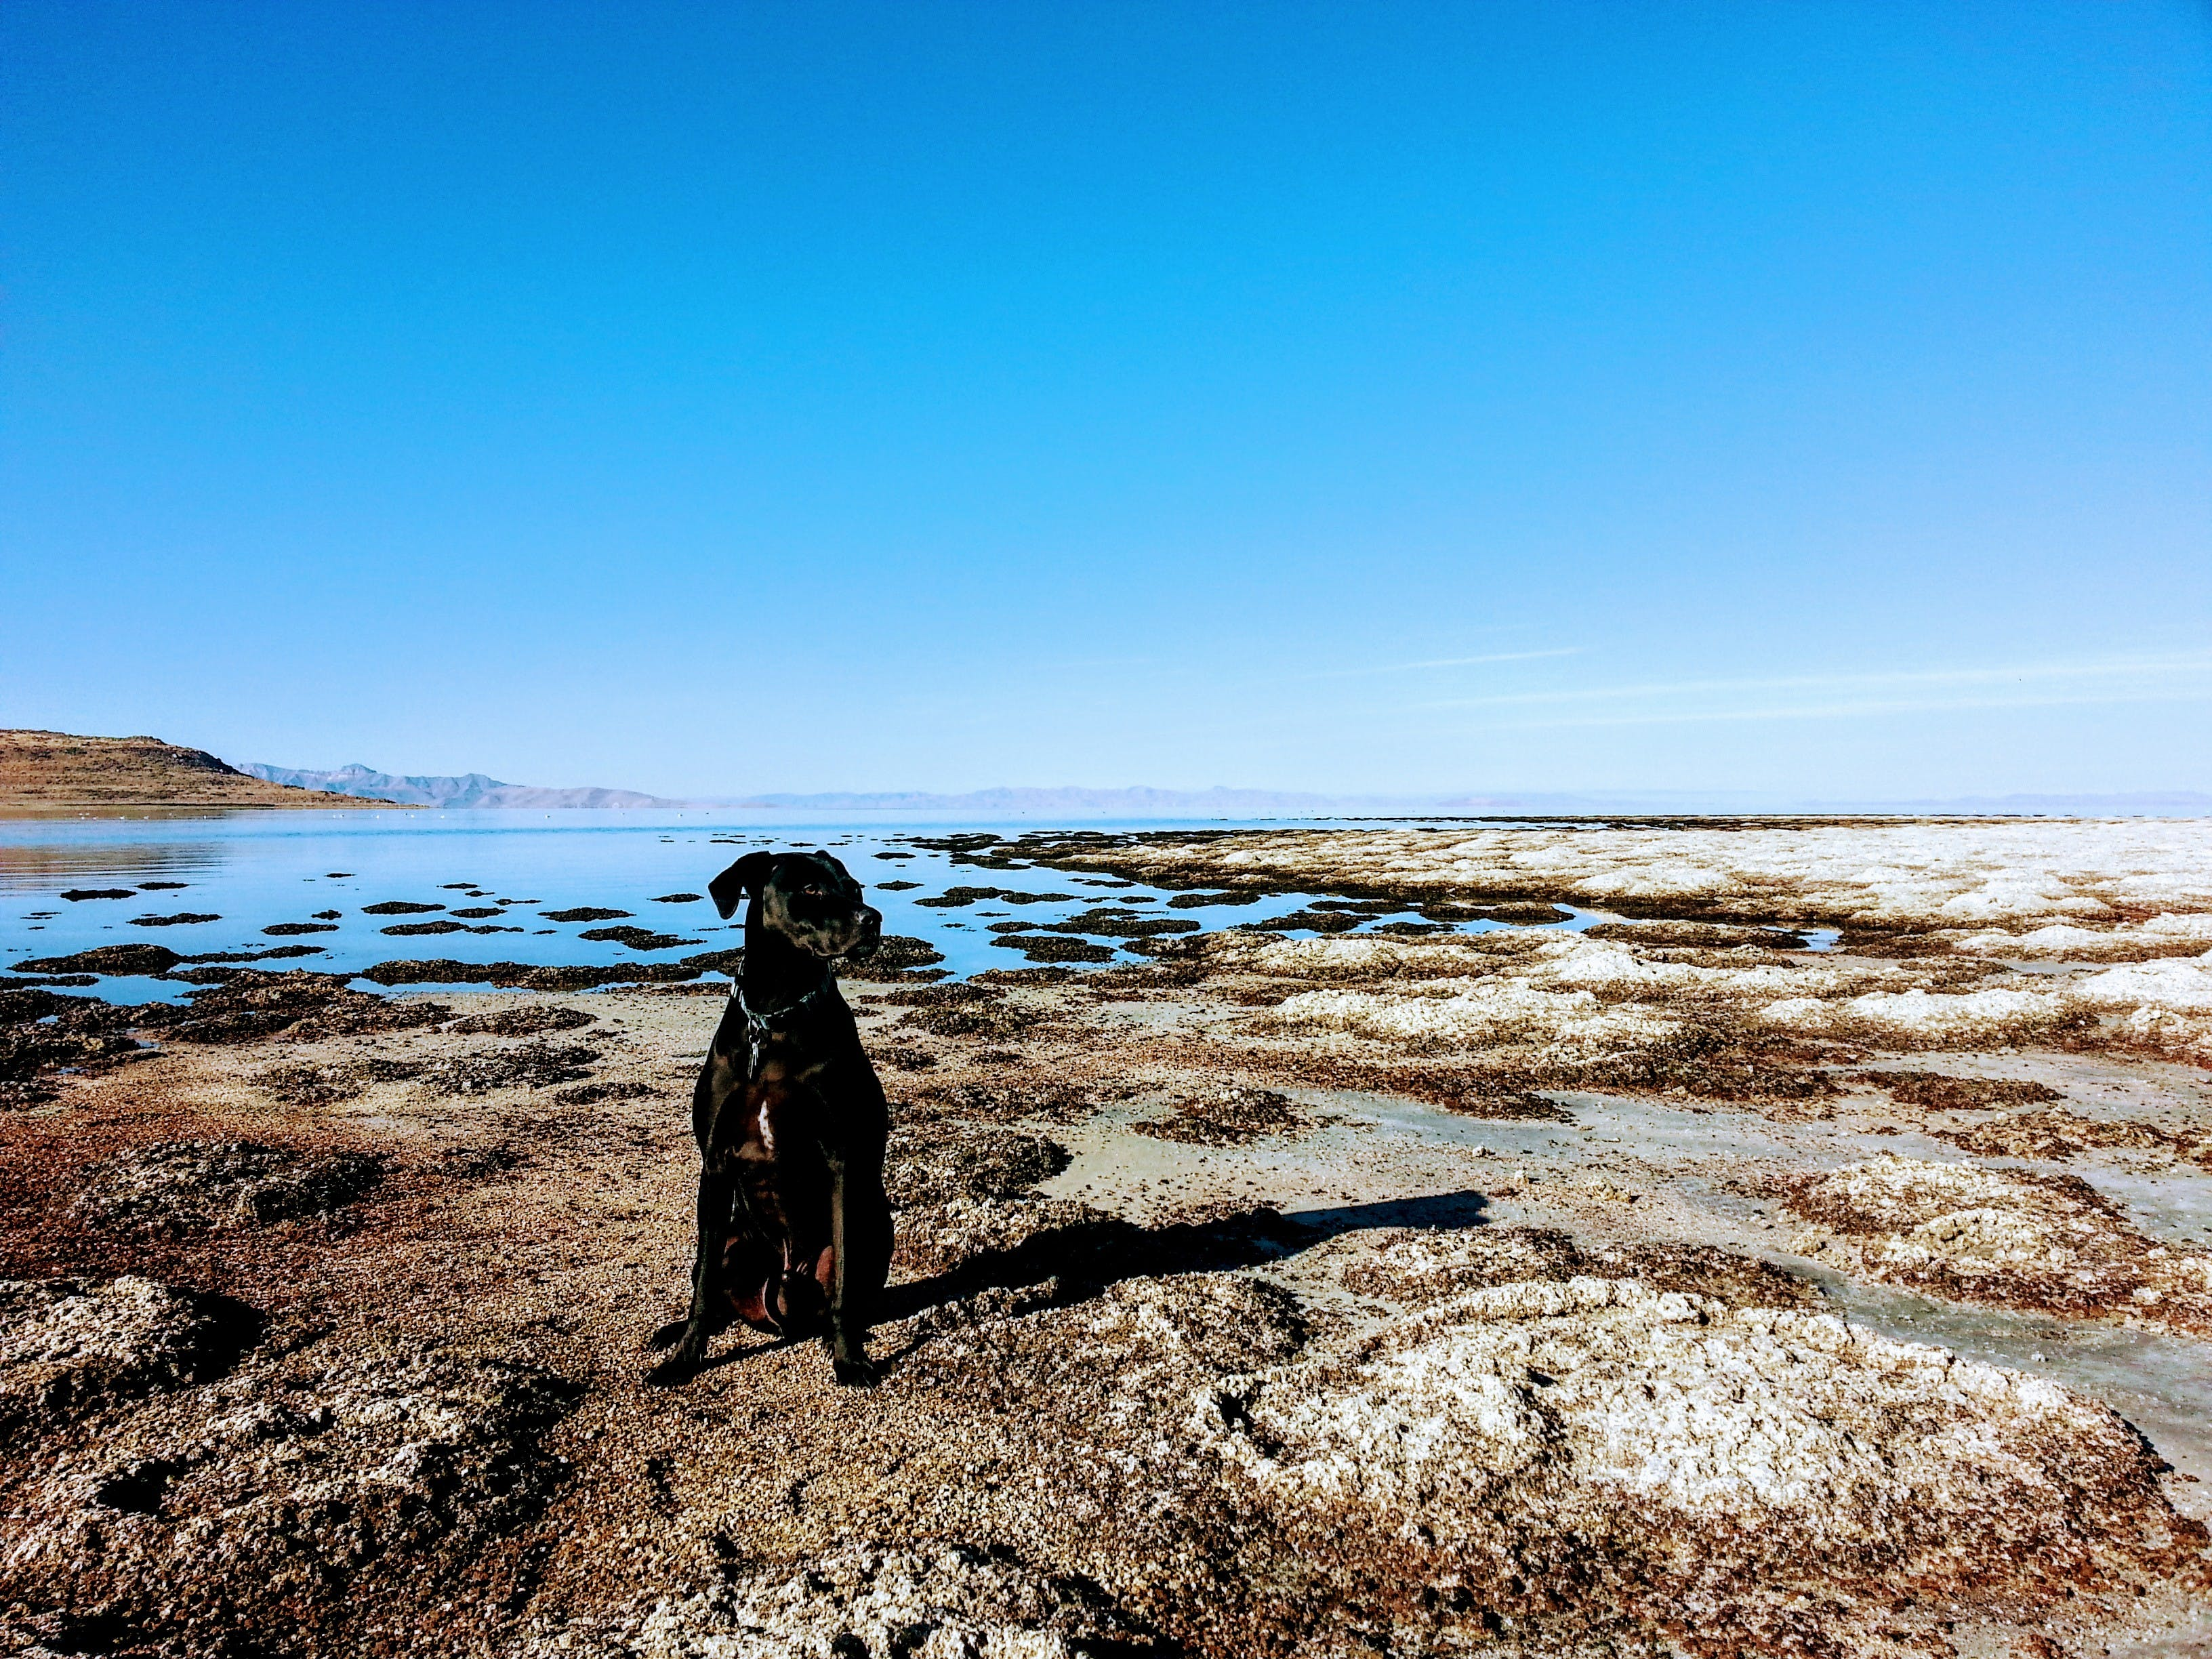 Dog Sitting in the Shore